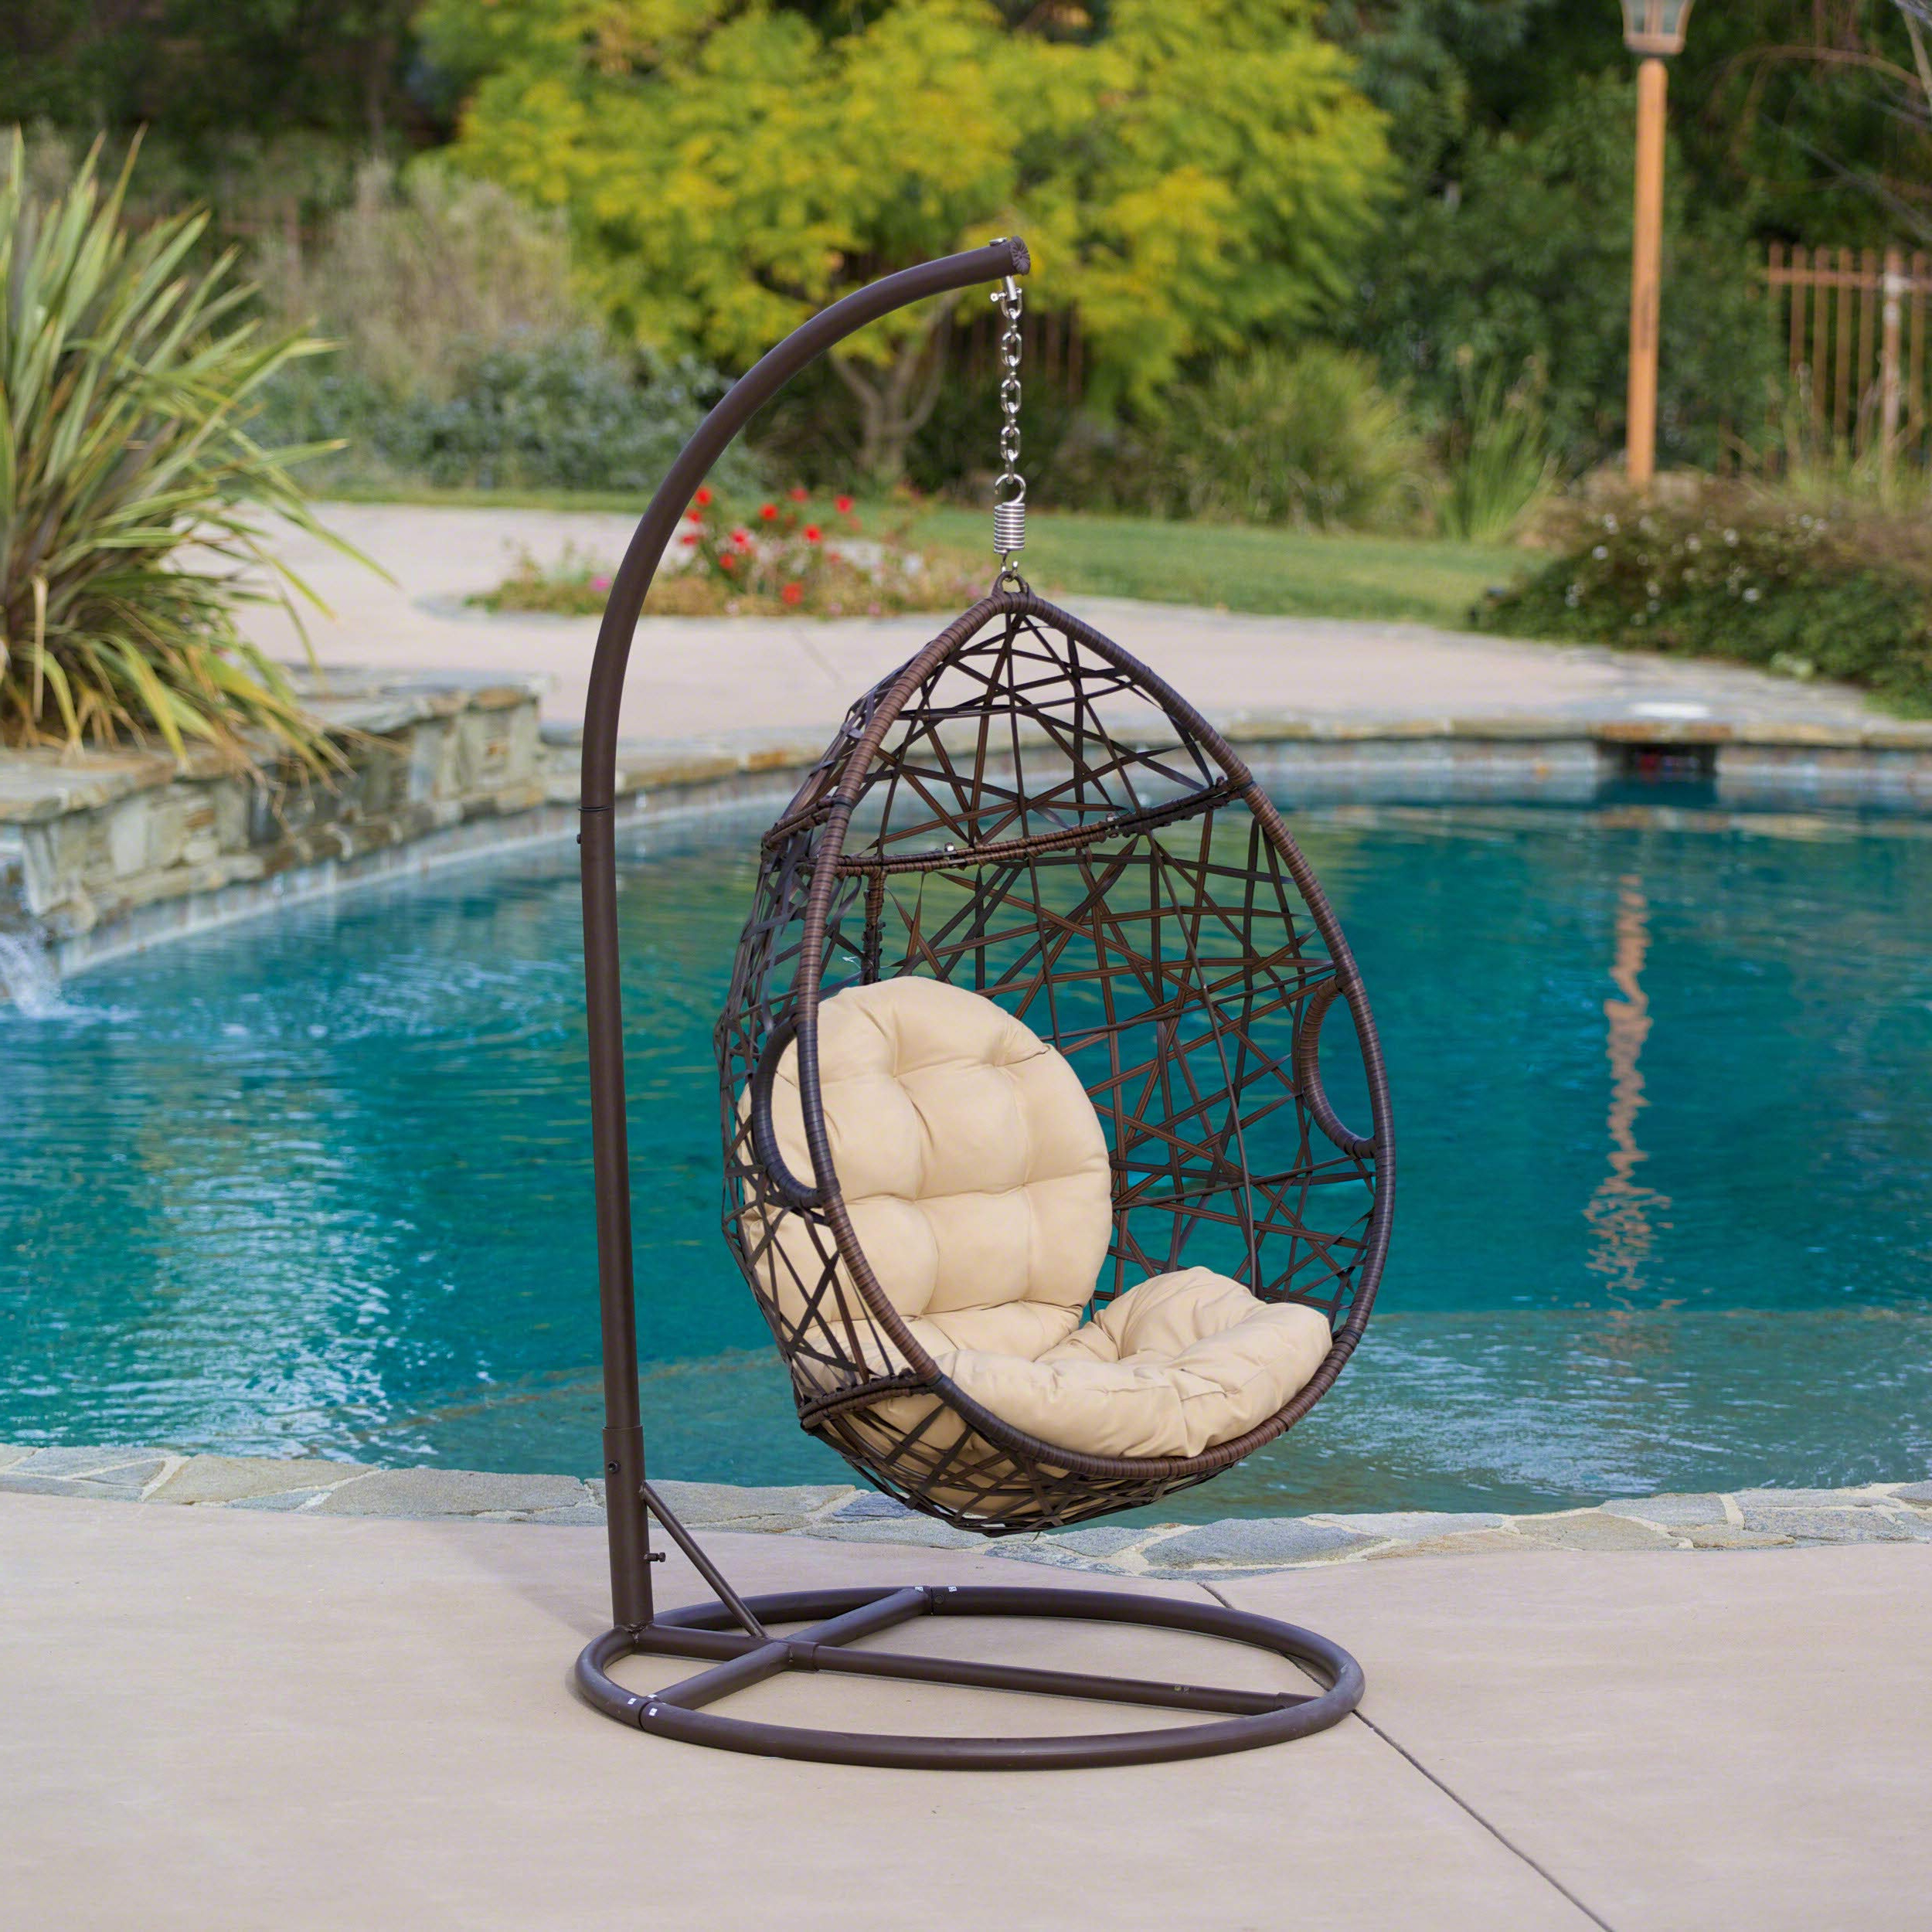 Recent Outdoor Wicker Plastic Tear Porch Swings With Stand Inside Christopher Knight Home (View 23 of 30)